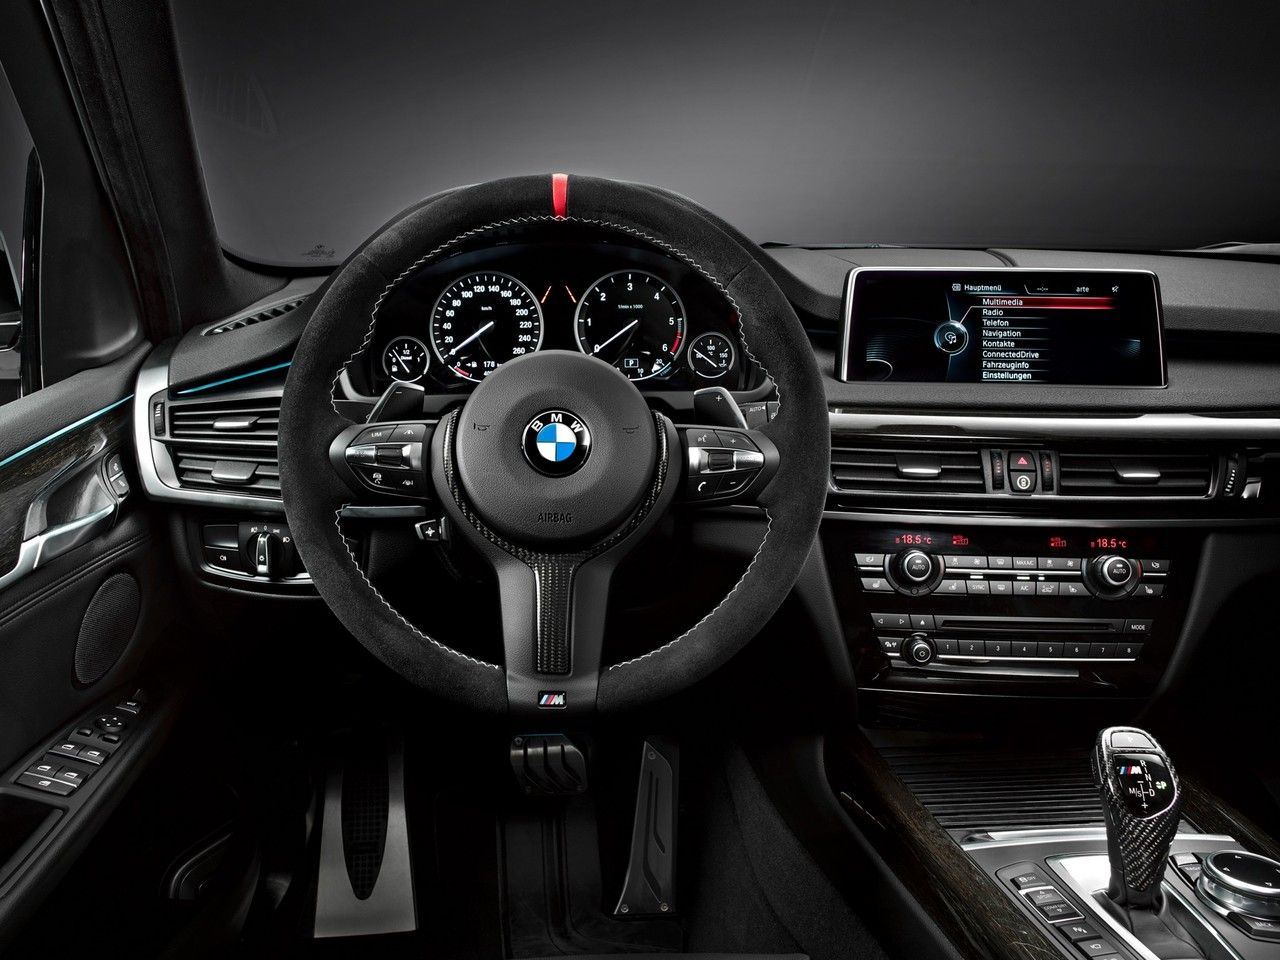 2013 bmw x5 m love my interior black on dark wood grain wishful thinking pinterest. Black Bedroom Furniture Sets. Home Design Ideas